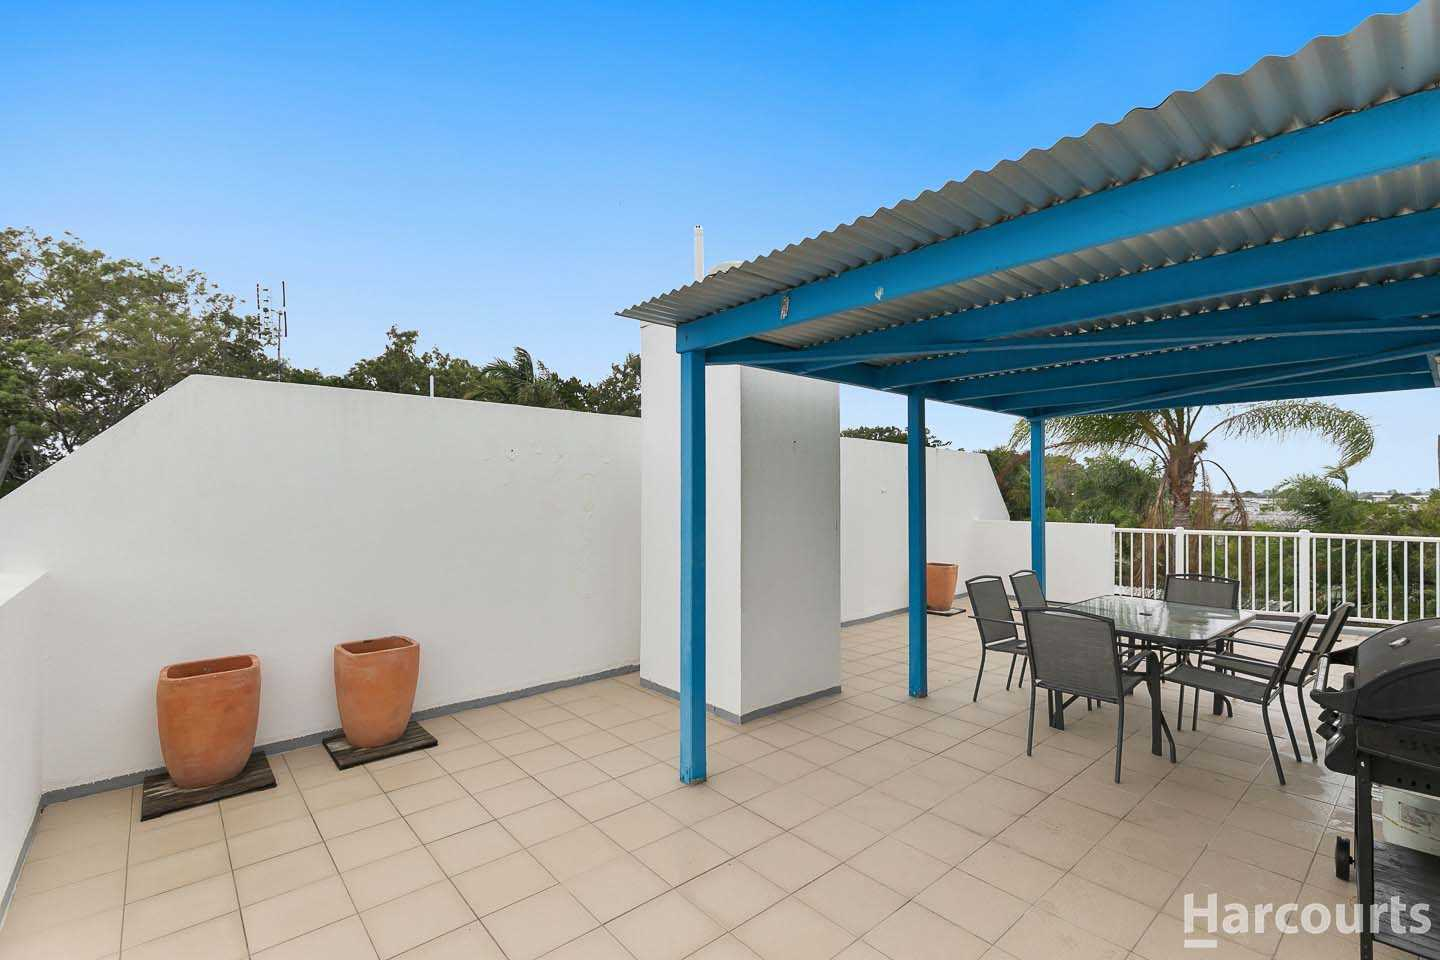 Exclusive Rooftop Balcony - Highly Sought After Location!